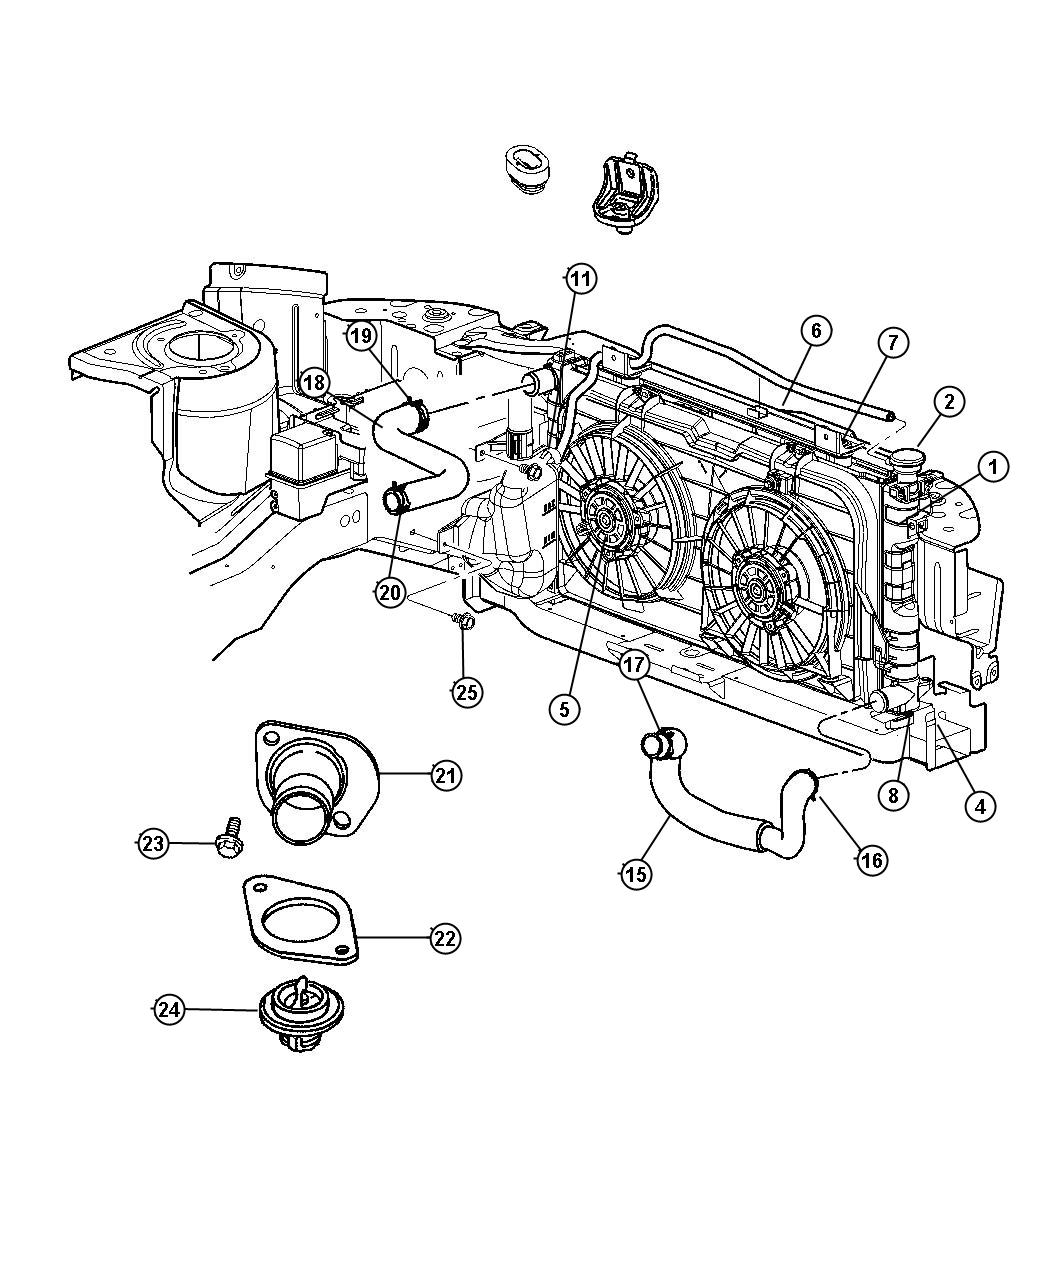 Diagram Radiator and Related Parts , 3.3L Engine. for your 2018 Dodge Grand Caravan